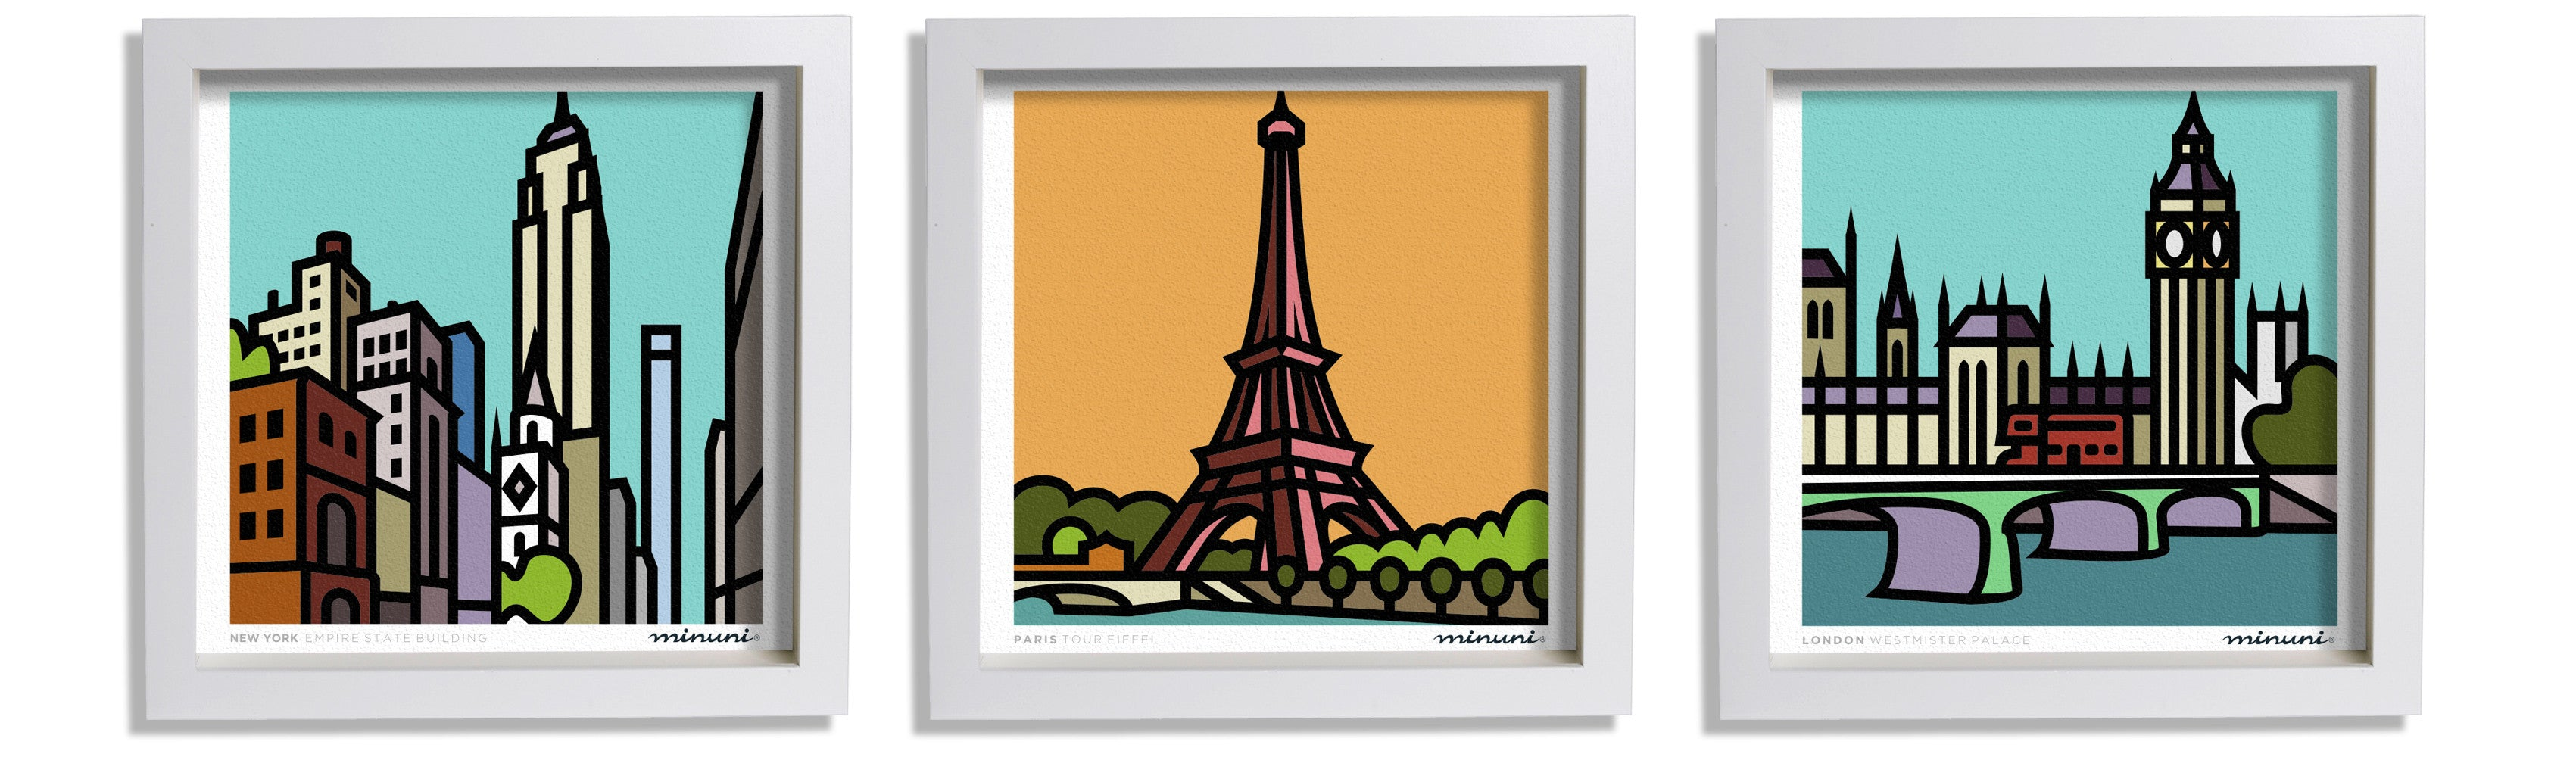 Artprints of Paris New York and London